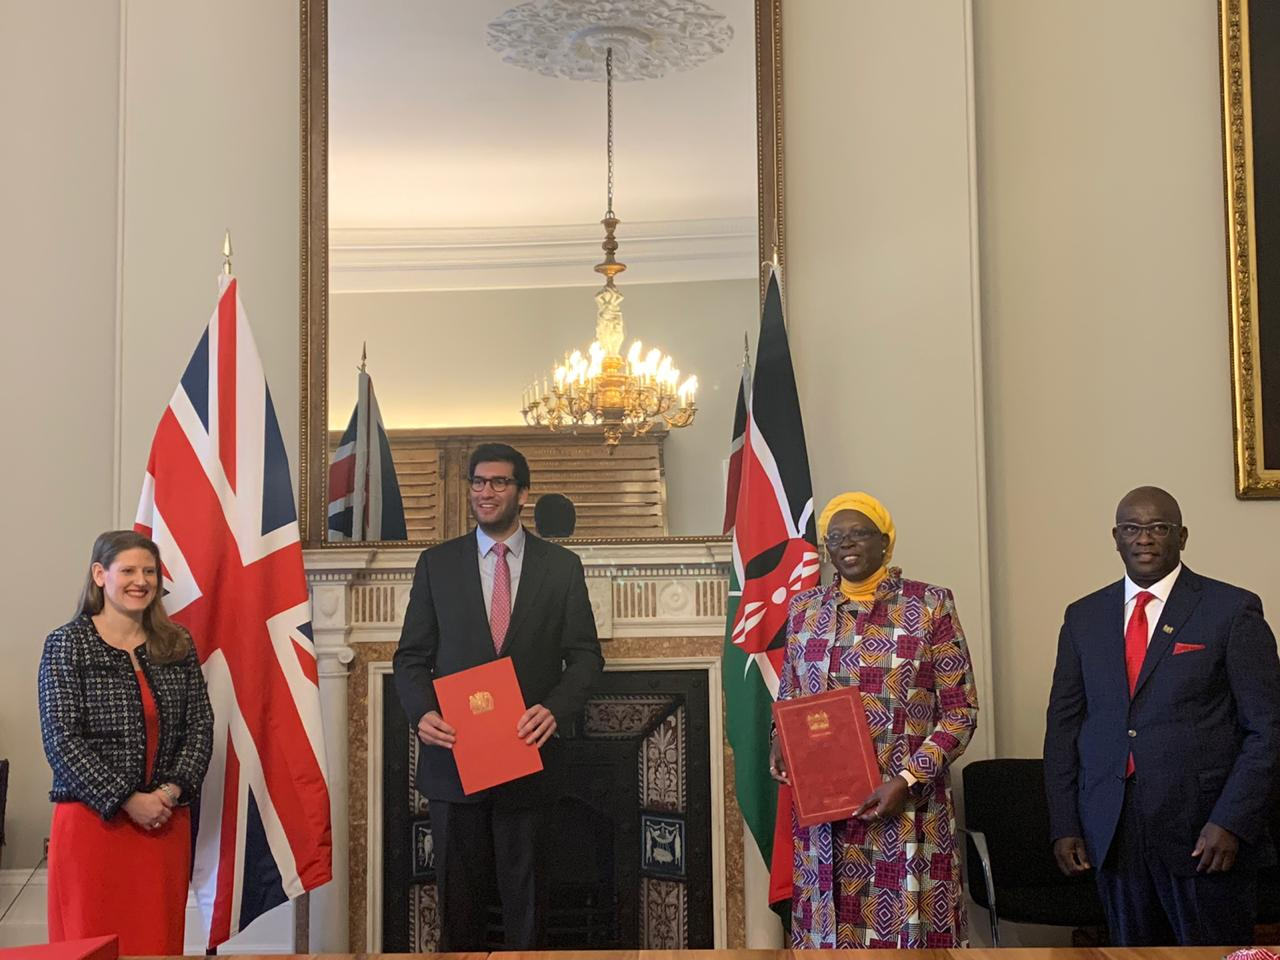 CS Betty Maina (second right), UK International Trade Minister Ranil Jayawardena (second left) and Kenya's High Commissioner to the United Kingdom Manoah Esipisu (right) after signing the pact.